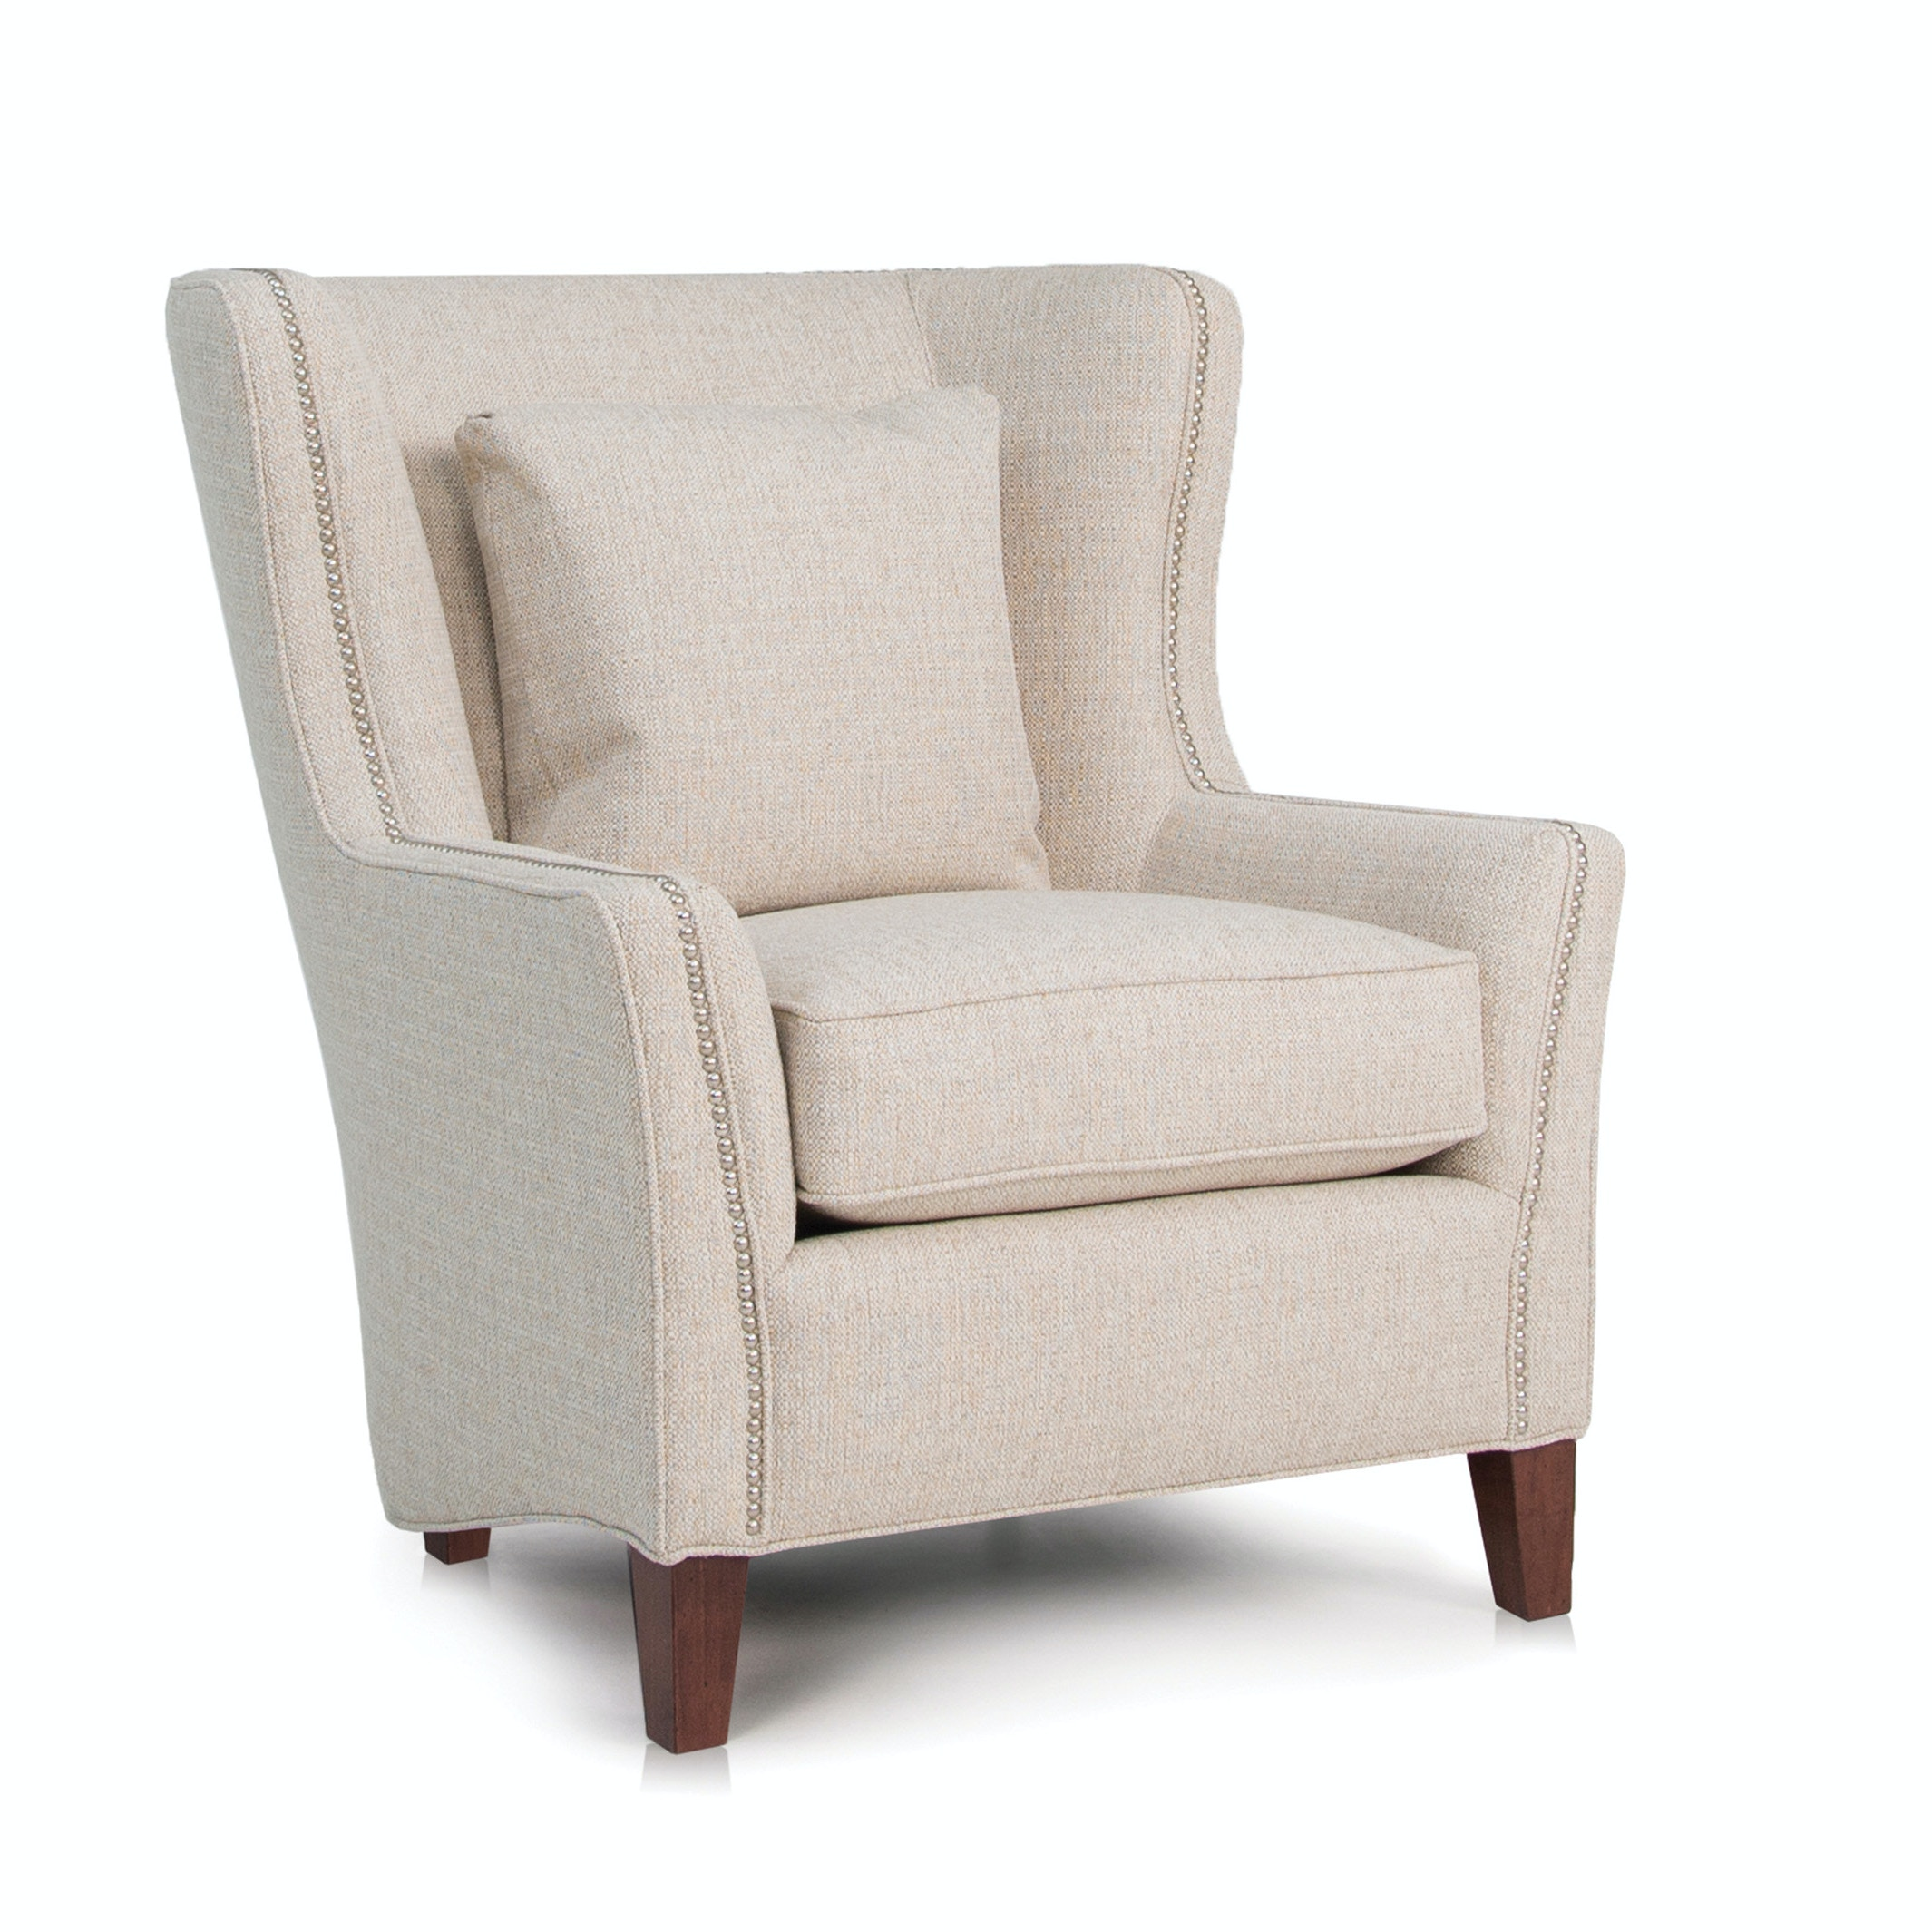 Smith Brothers Wing Chair 825 30